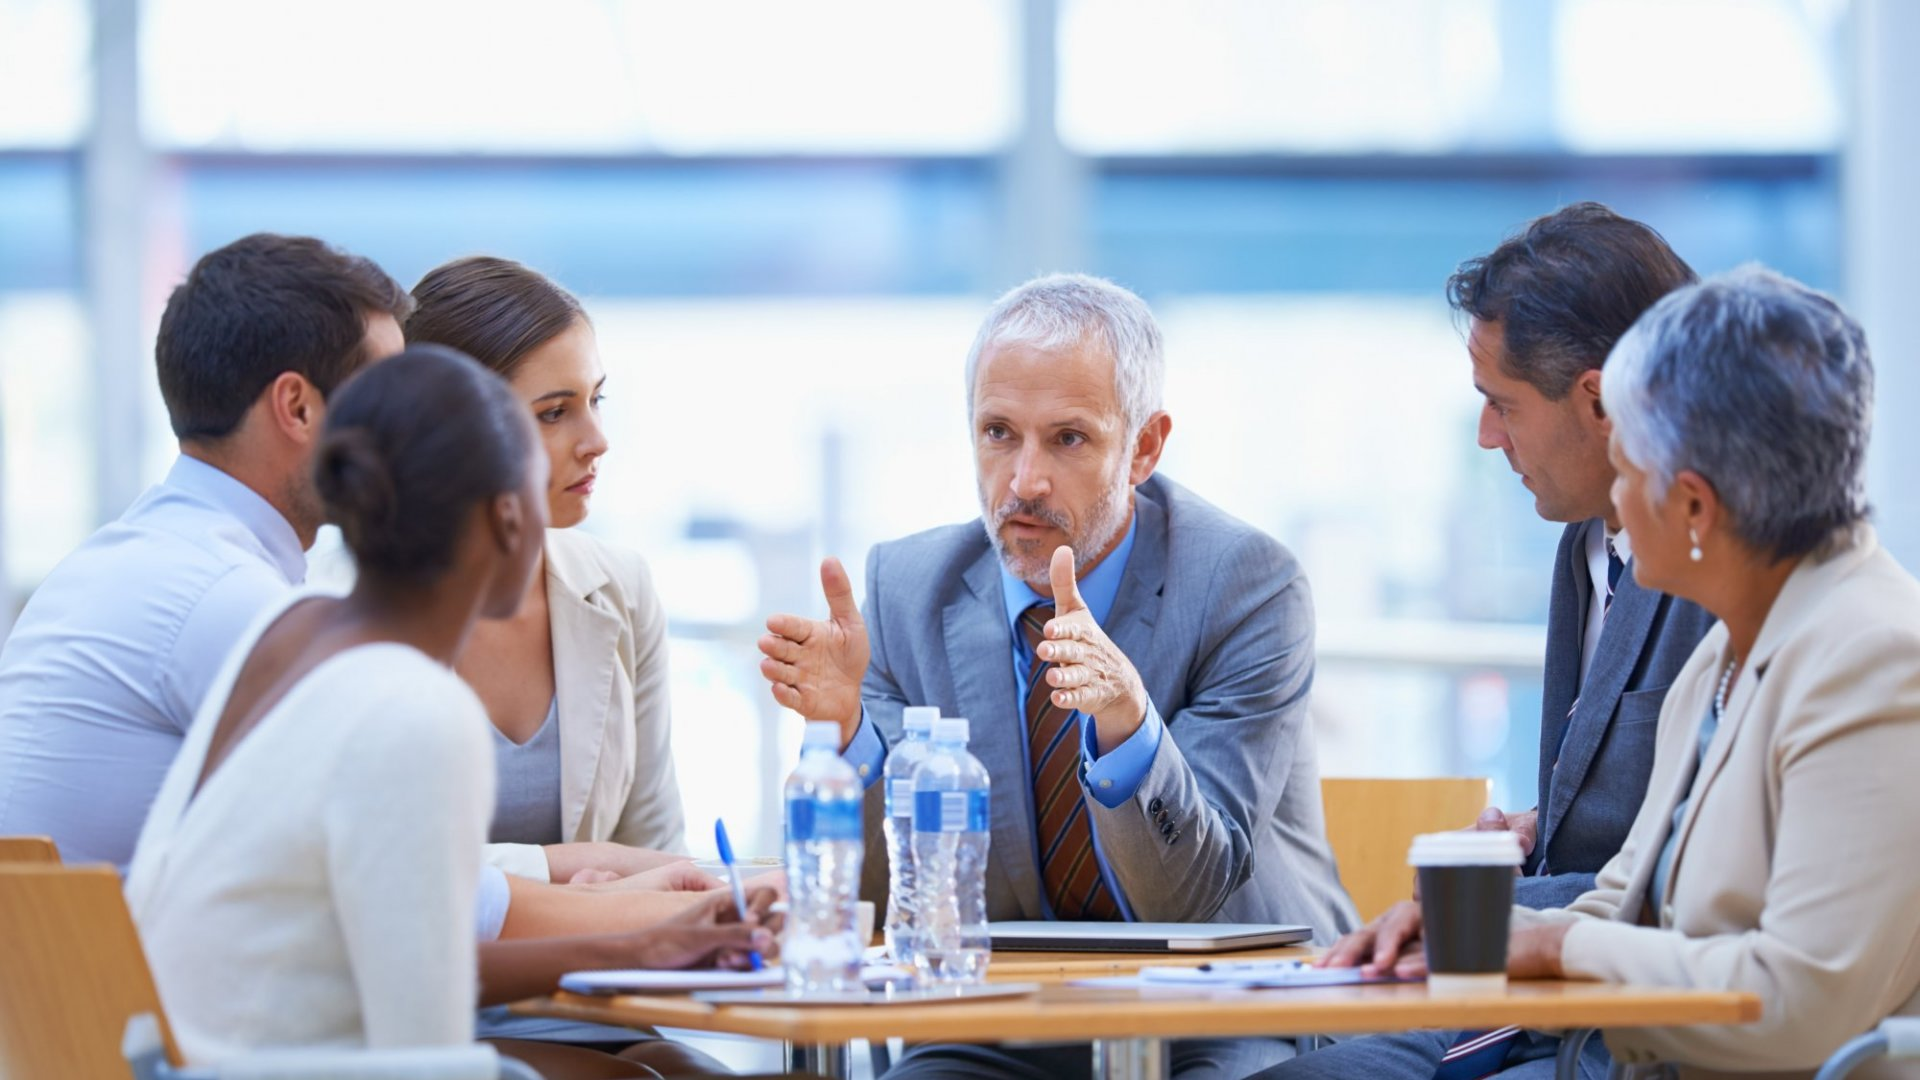 How Can You Become a More Compelling Leader? Make 1 Simple Change